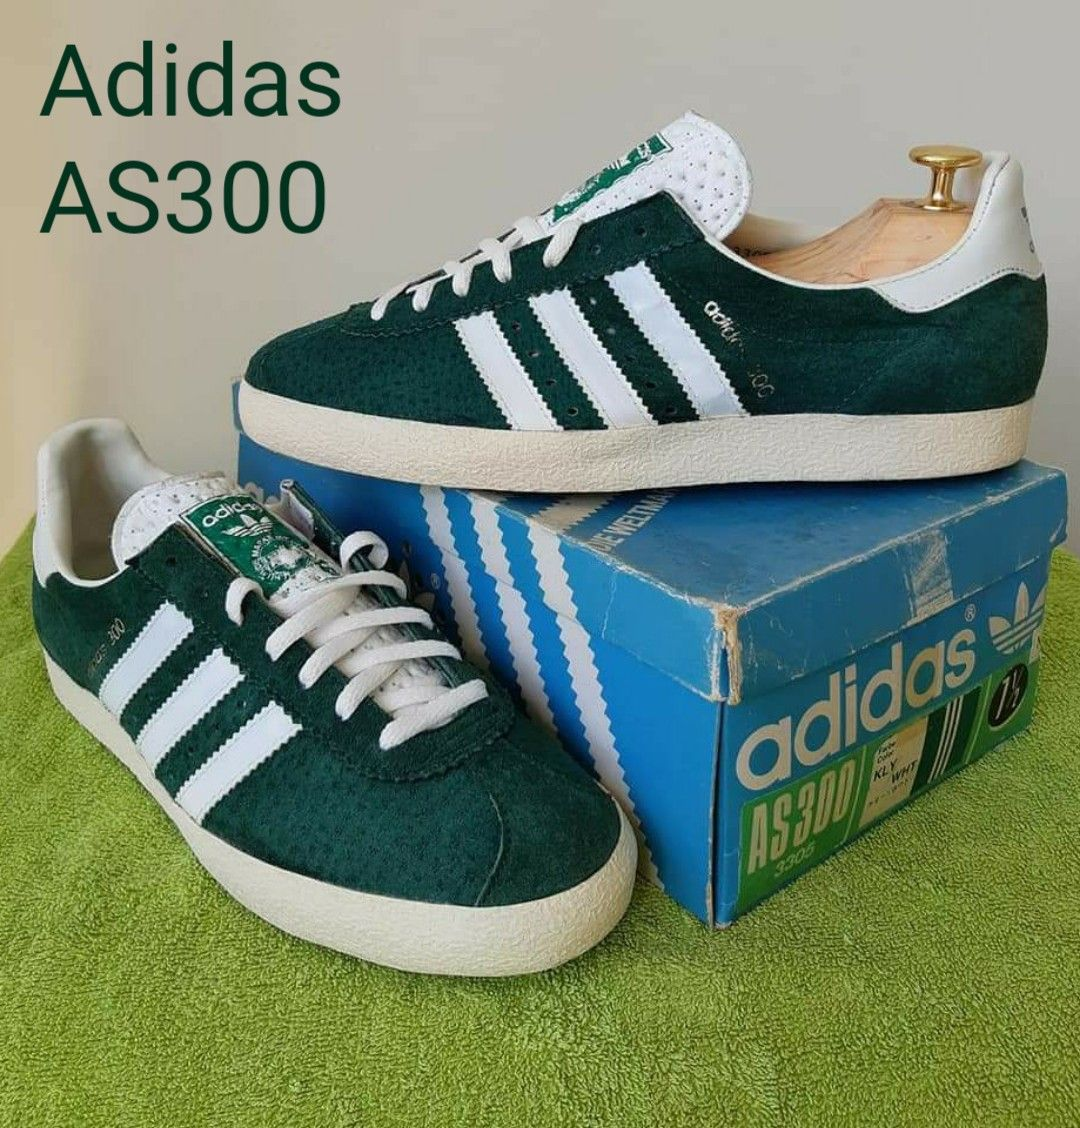 A stunning pair of vintage Adidas AS300 with original box